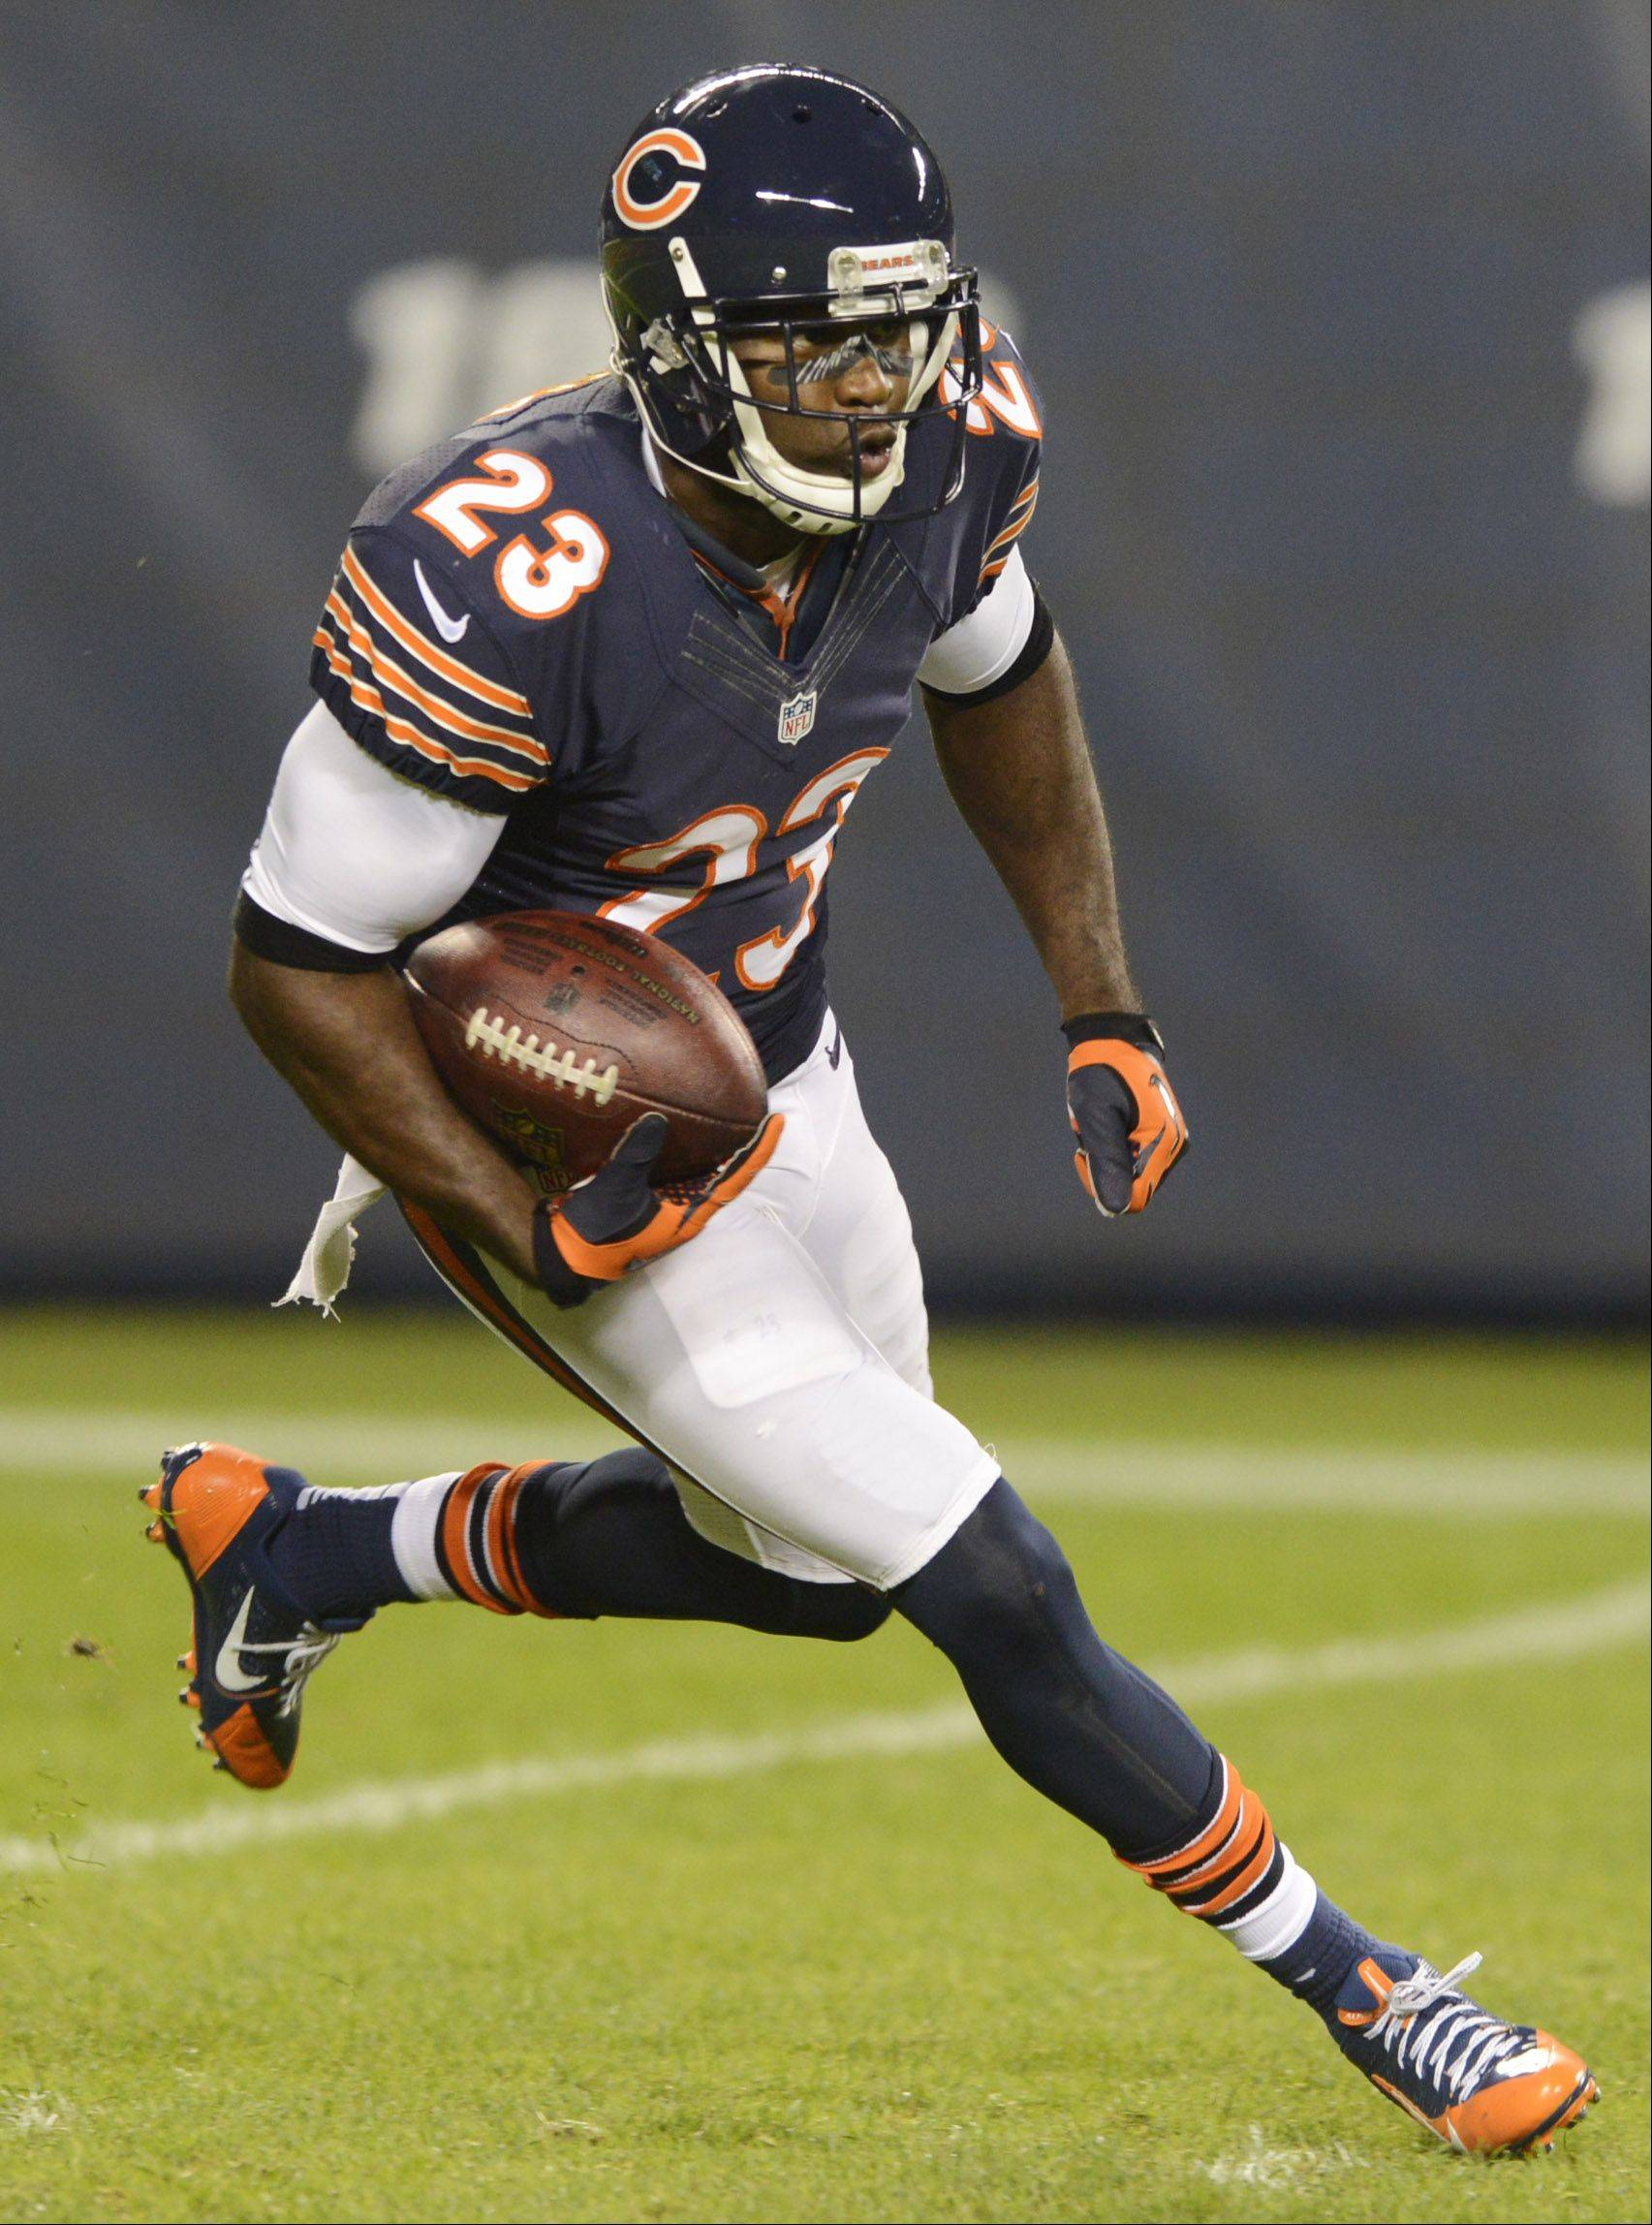 Devin Hester sets a team record for kickoff return yardage to start the second half.